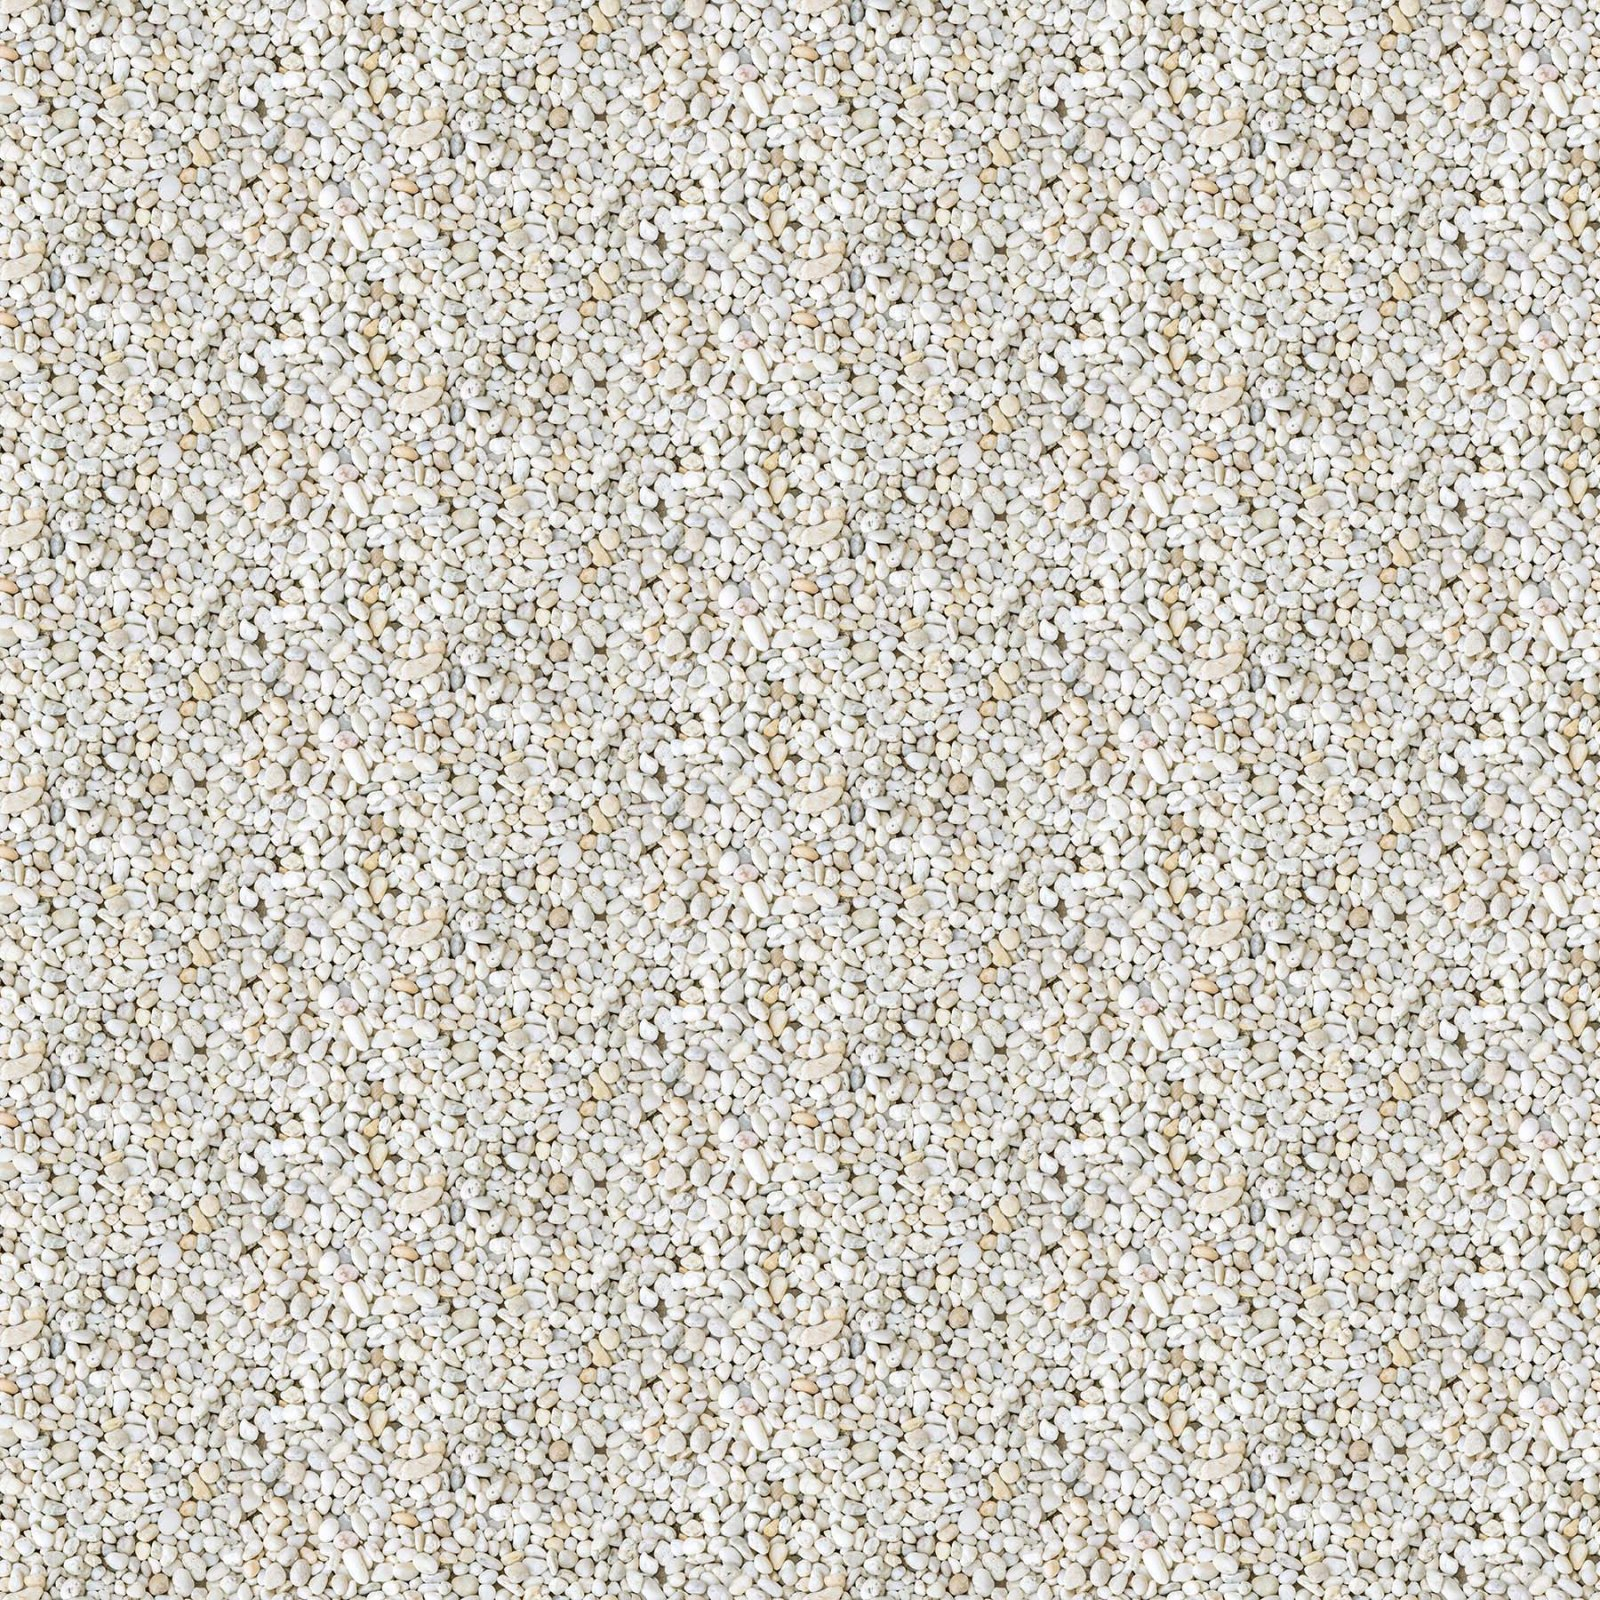 NORTH- Swept Away Neutral Pebbles